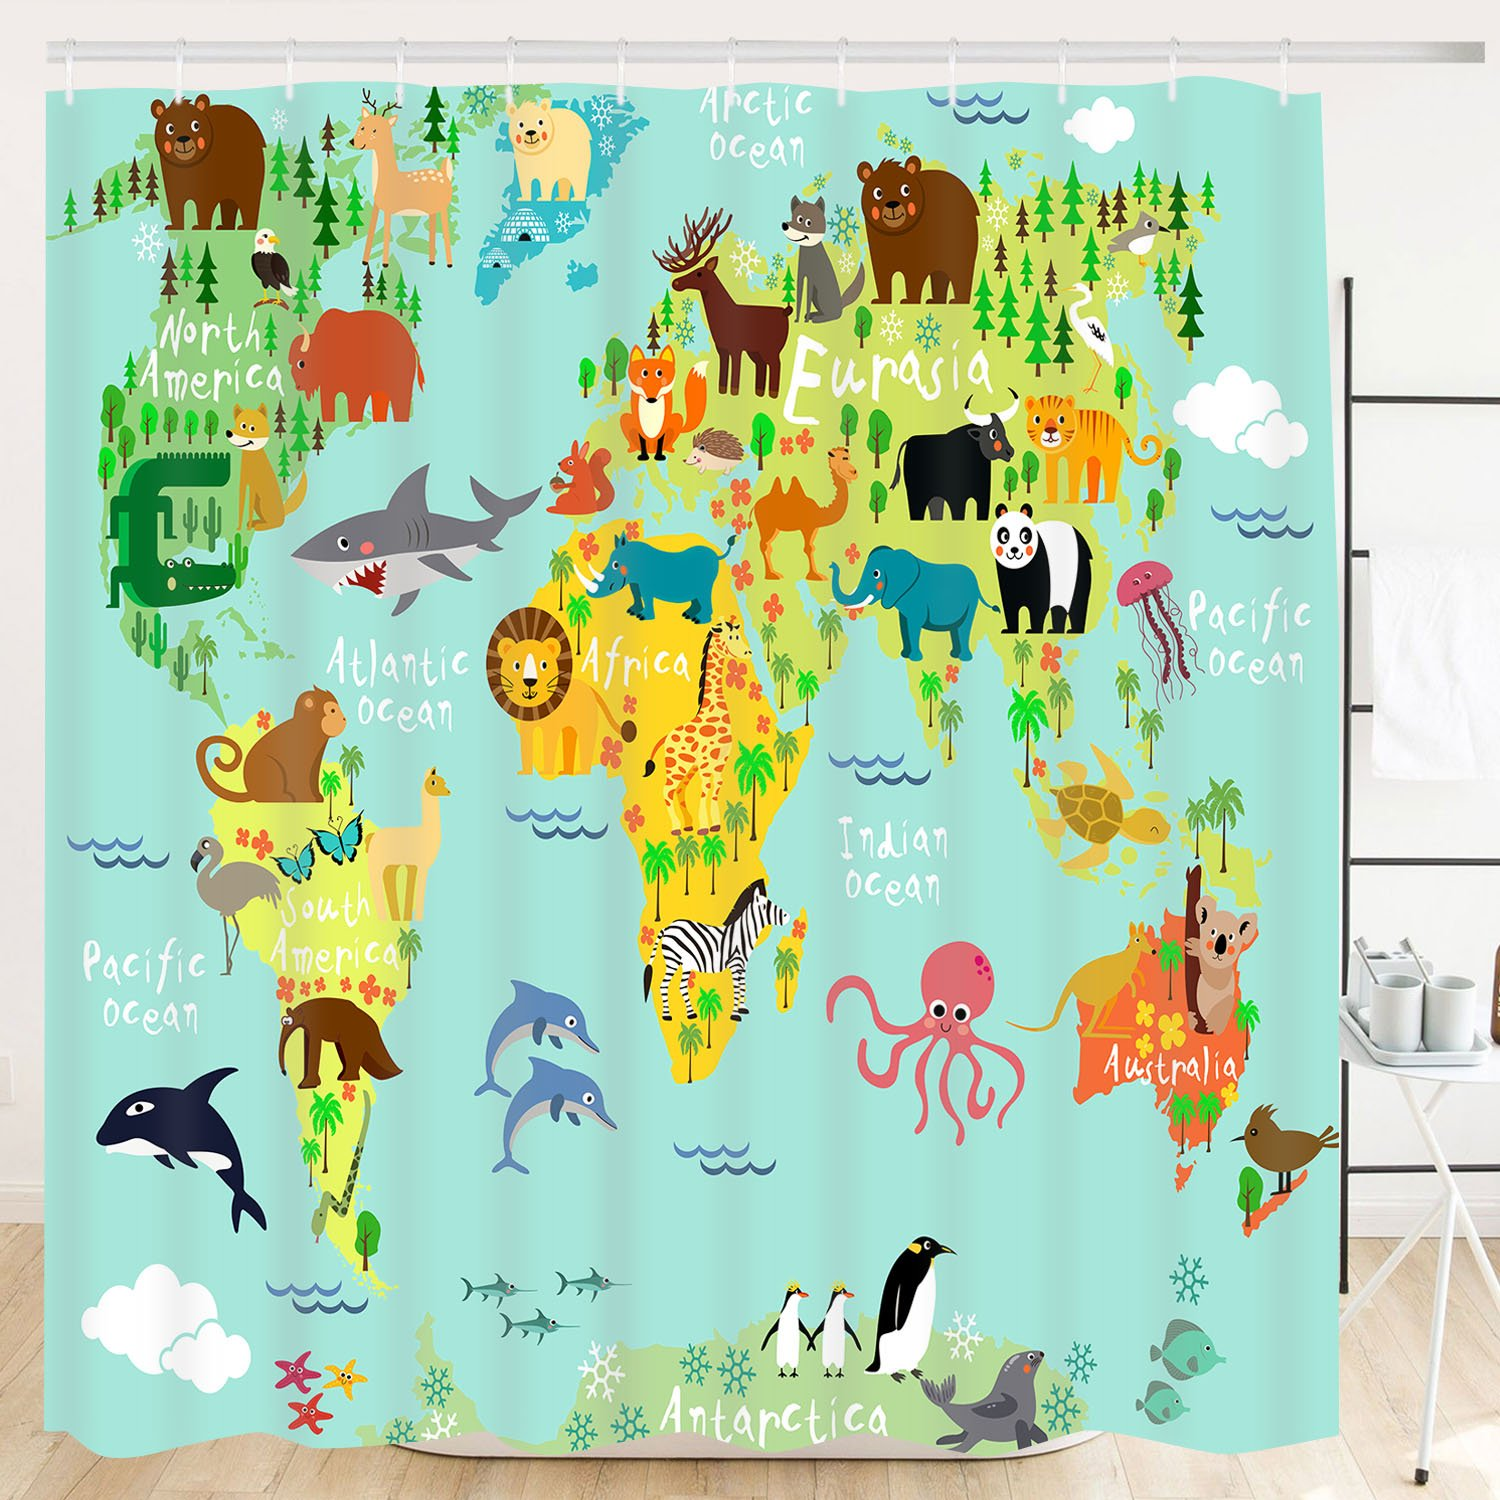 "Sunmner Bathroom Shower Curtain Bathroom Curtain Durable Bath Curtain Bathroom Accessories Ideas Kitchen Window Curtain (Zoo Map, 70""×69"")"